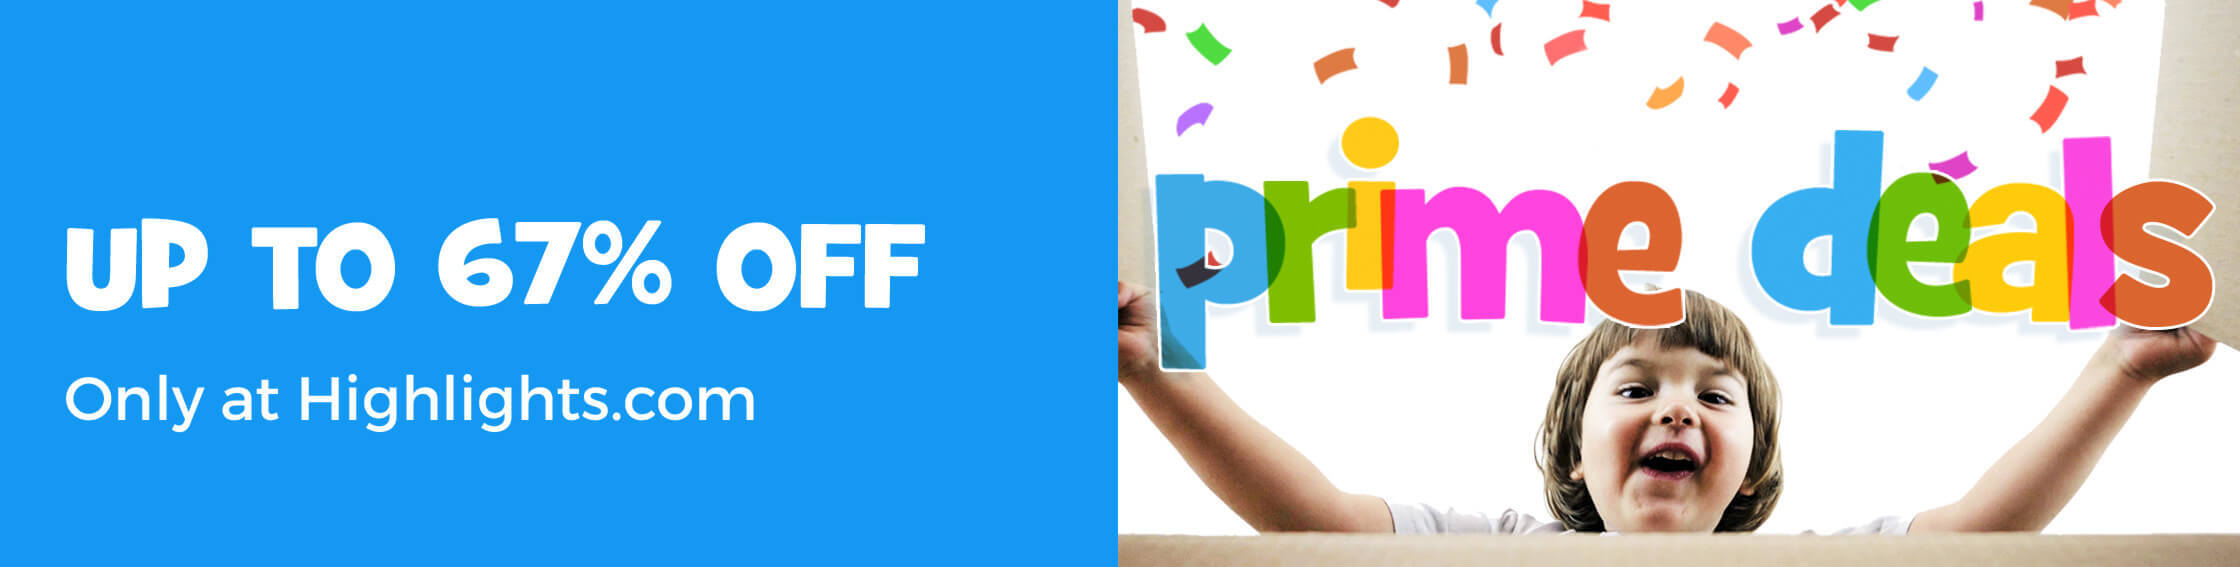 Save up to 67% during Prime Week – only at Highlights dot com!